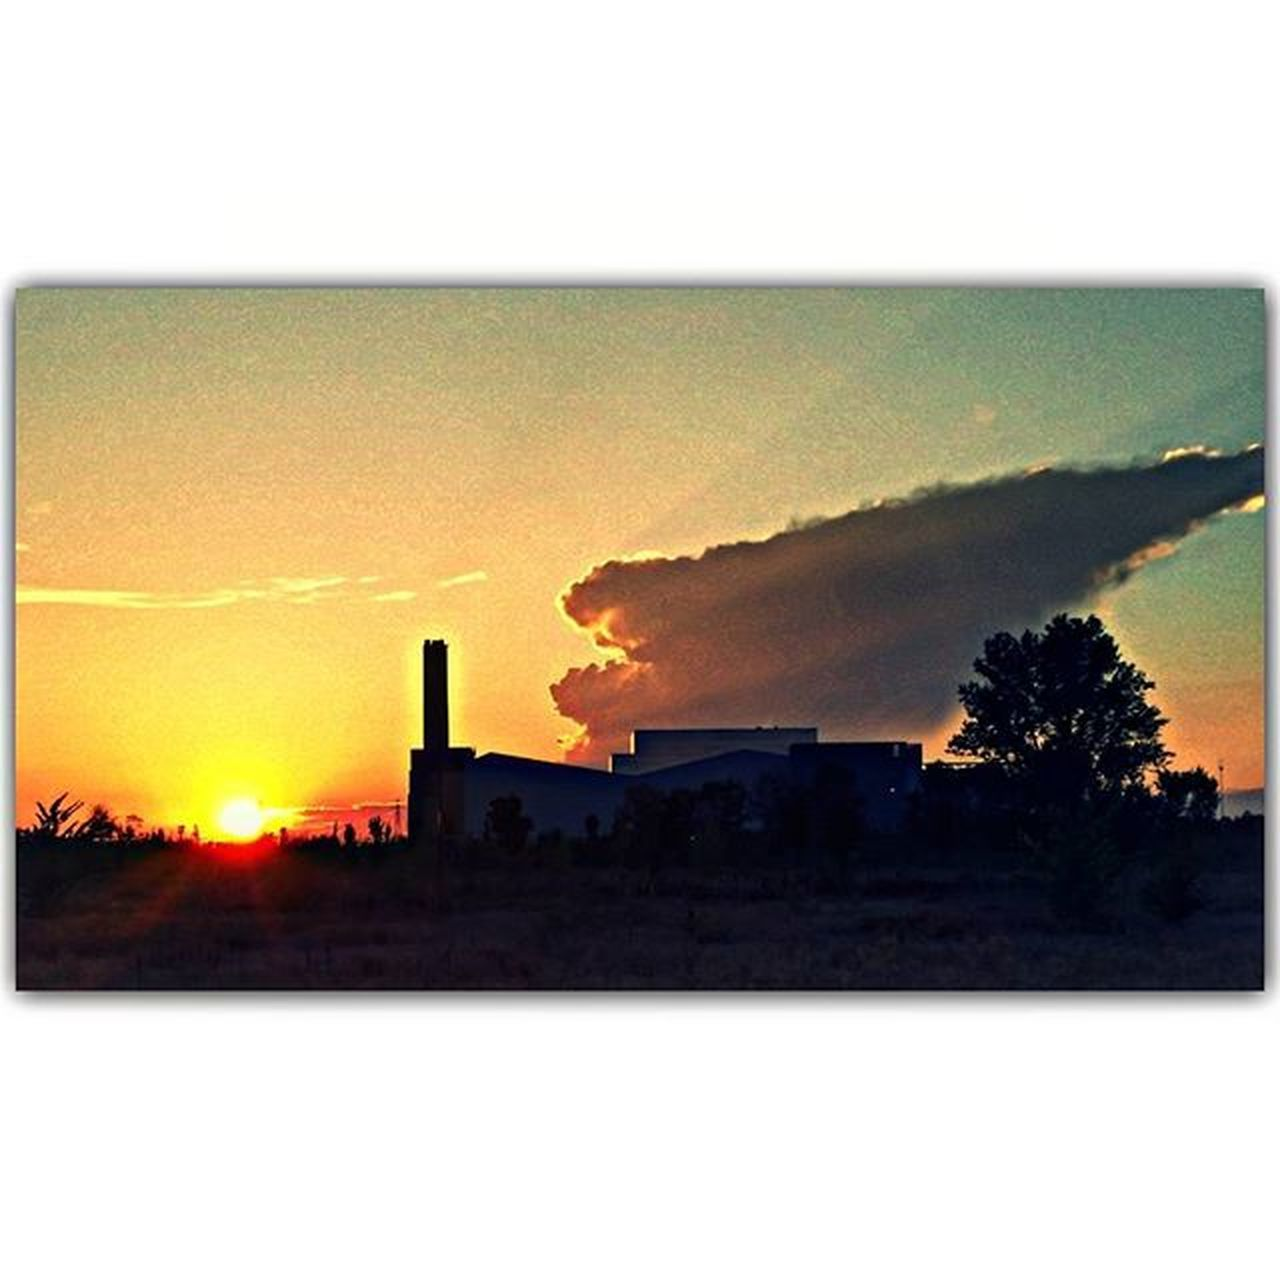 air pollution, sunset, factory, industry, silhouette, smoke stack, pollution, built structure, architecture, no people, sky, outdoors, chimney, tree, building exterior, scenics, nature, clear sky, global warming, beauty in nature, day